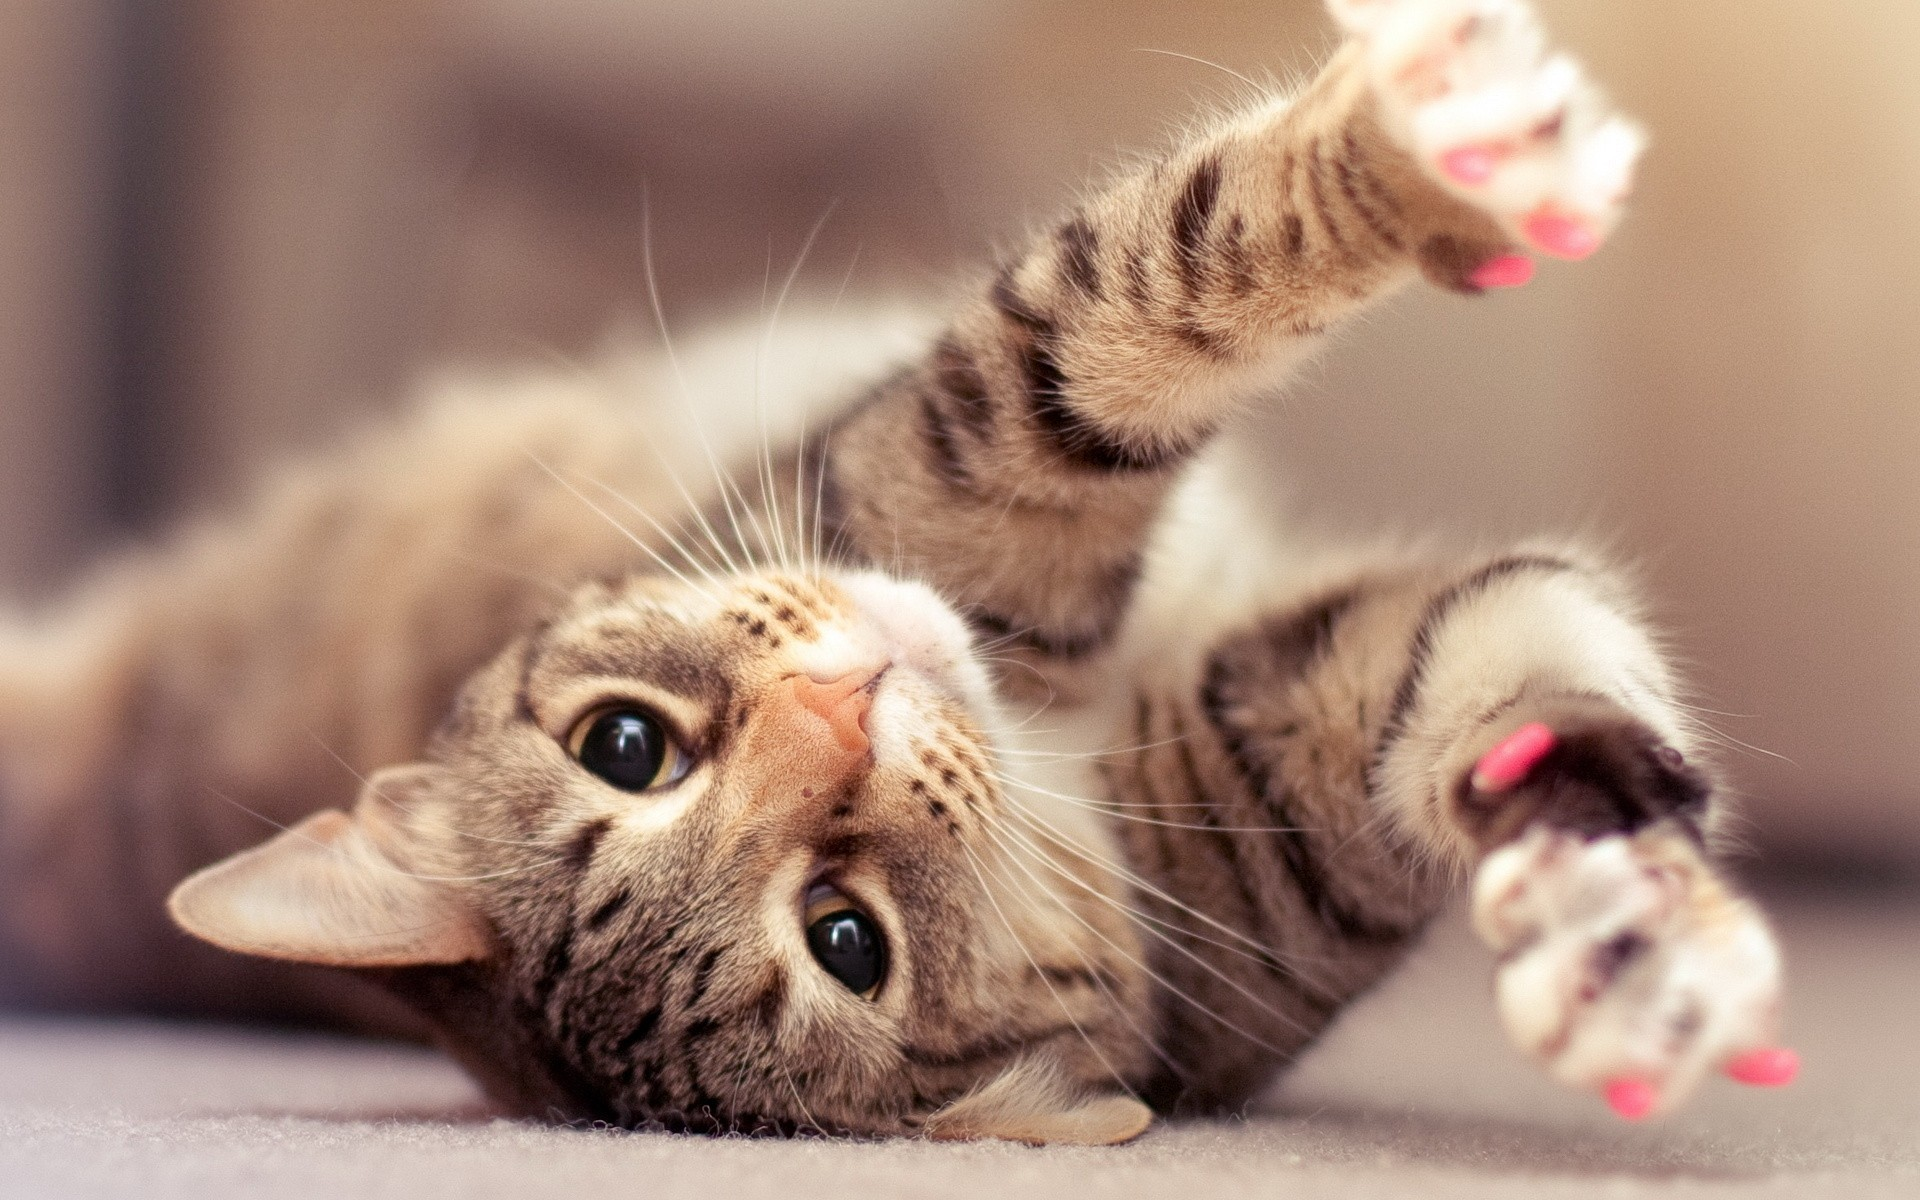 Hd wallpaper · awesome Cute Lazy Cat Background Picture